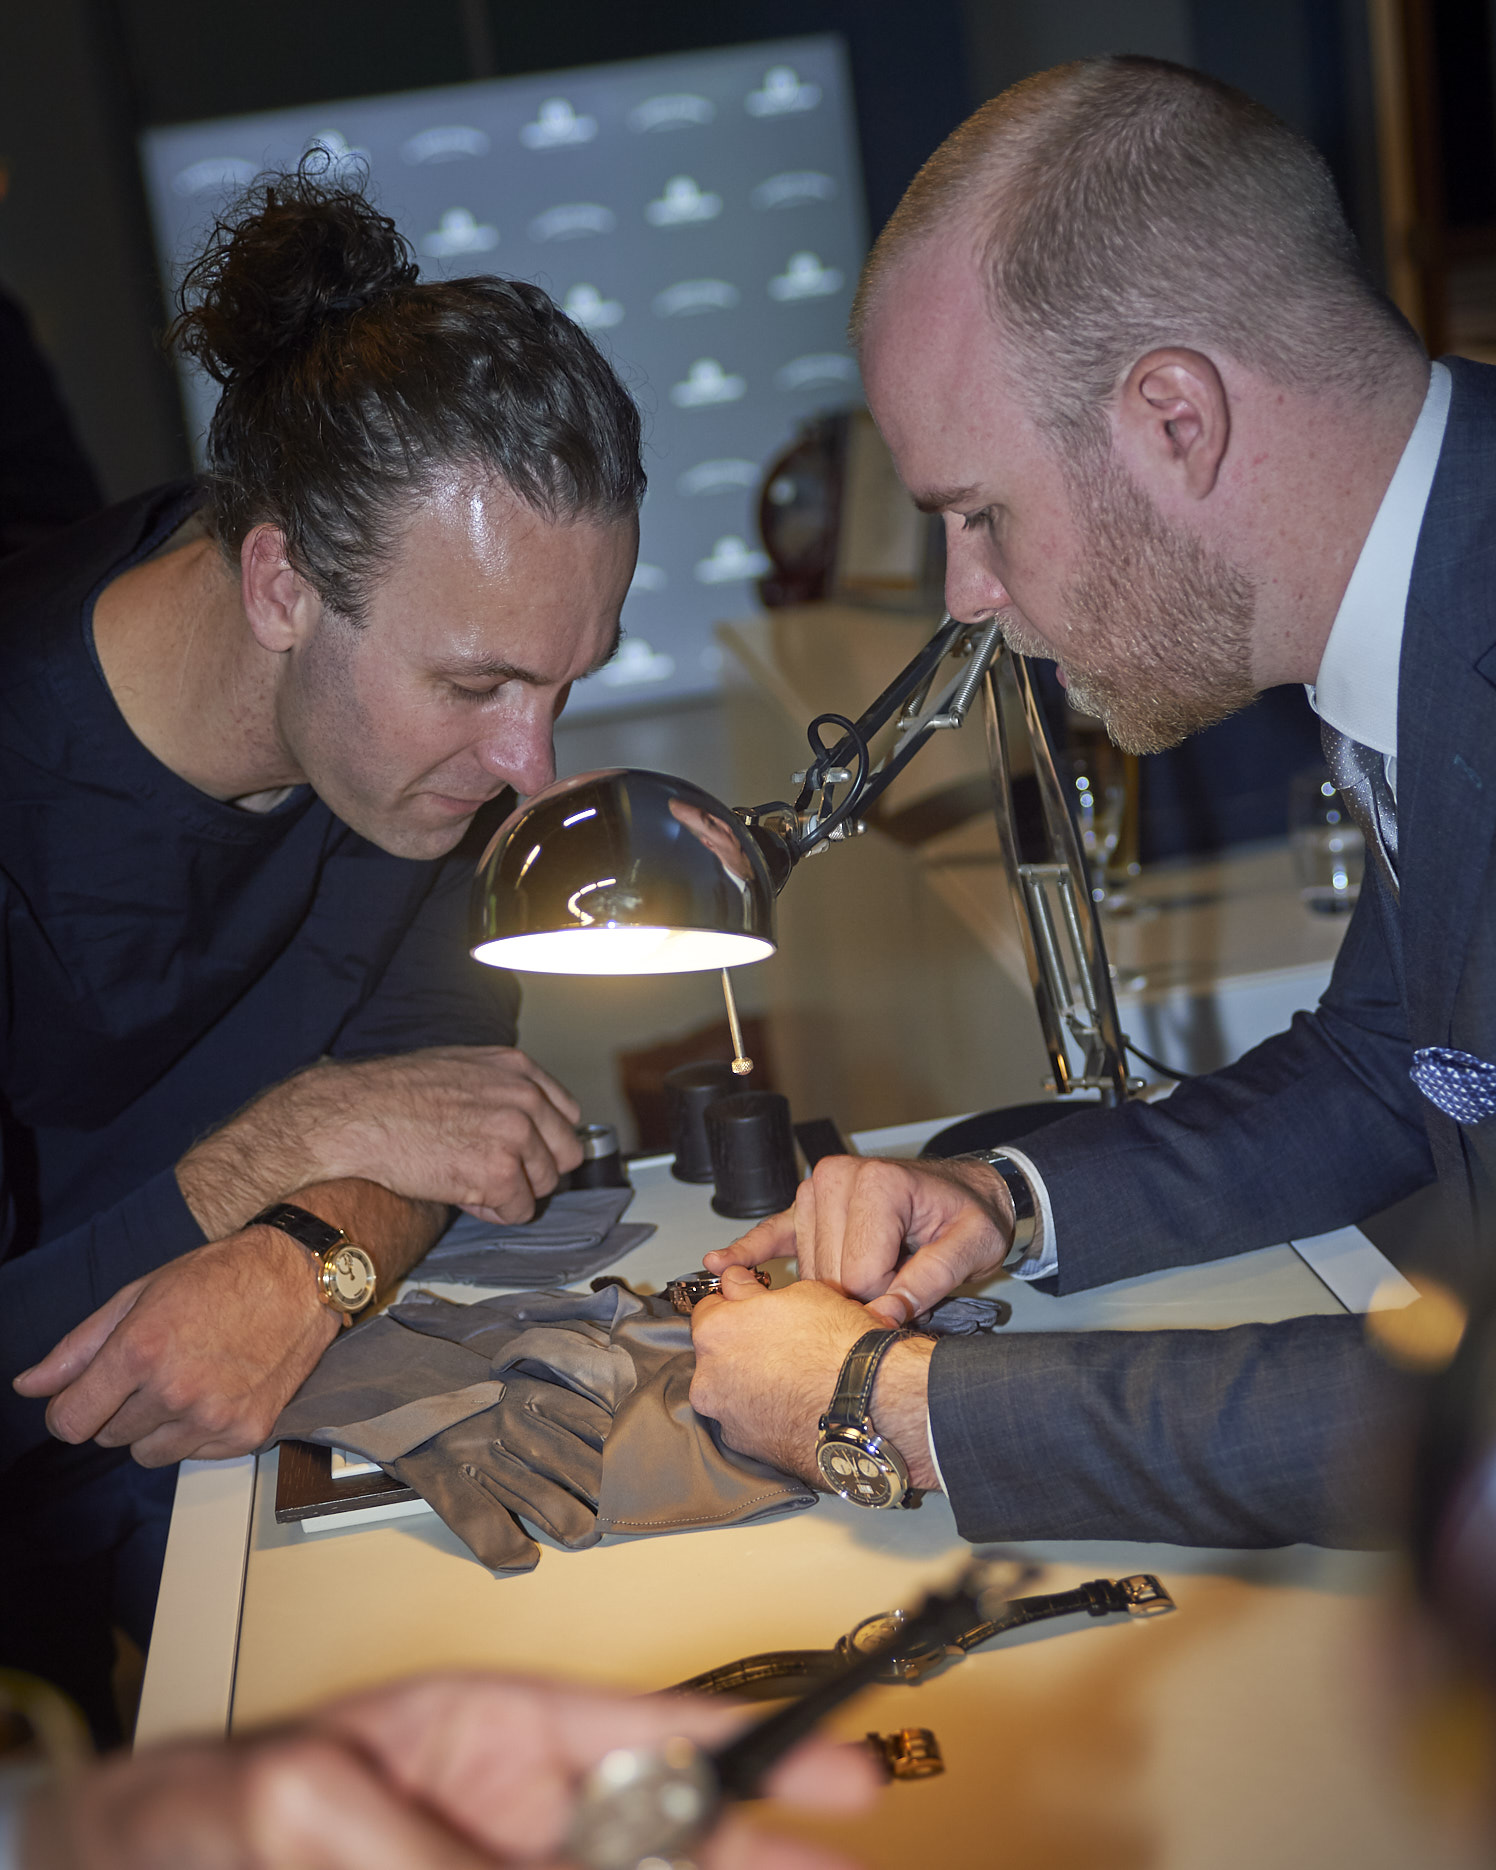 A. lange and Sohne X Monochrome-Watches event recap - 25